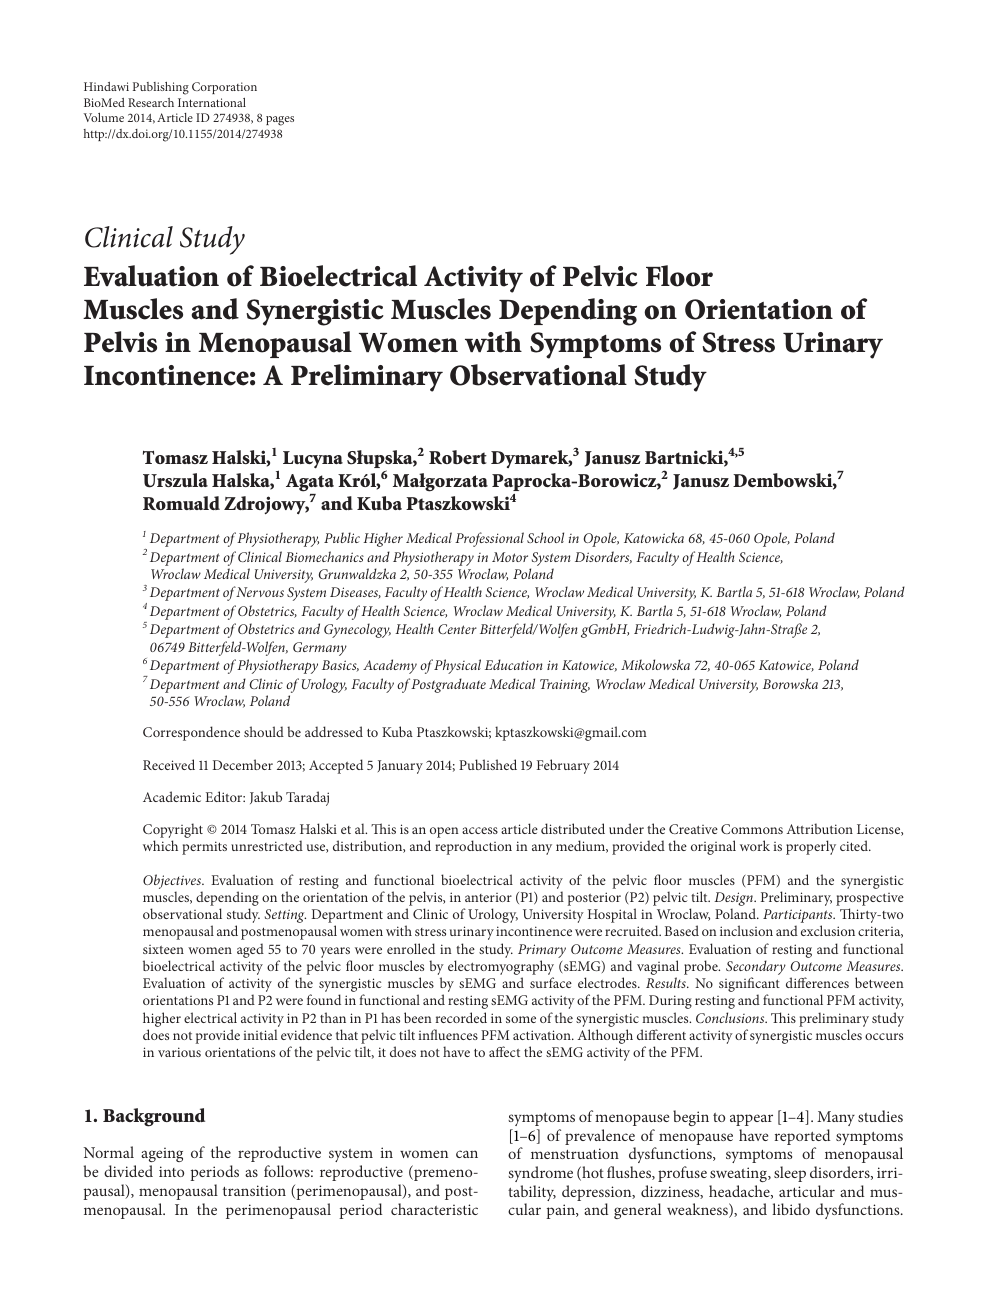 Evaluation of Bioelectrical Activity of Pelvic Floor Muscles